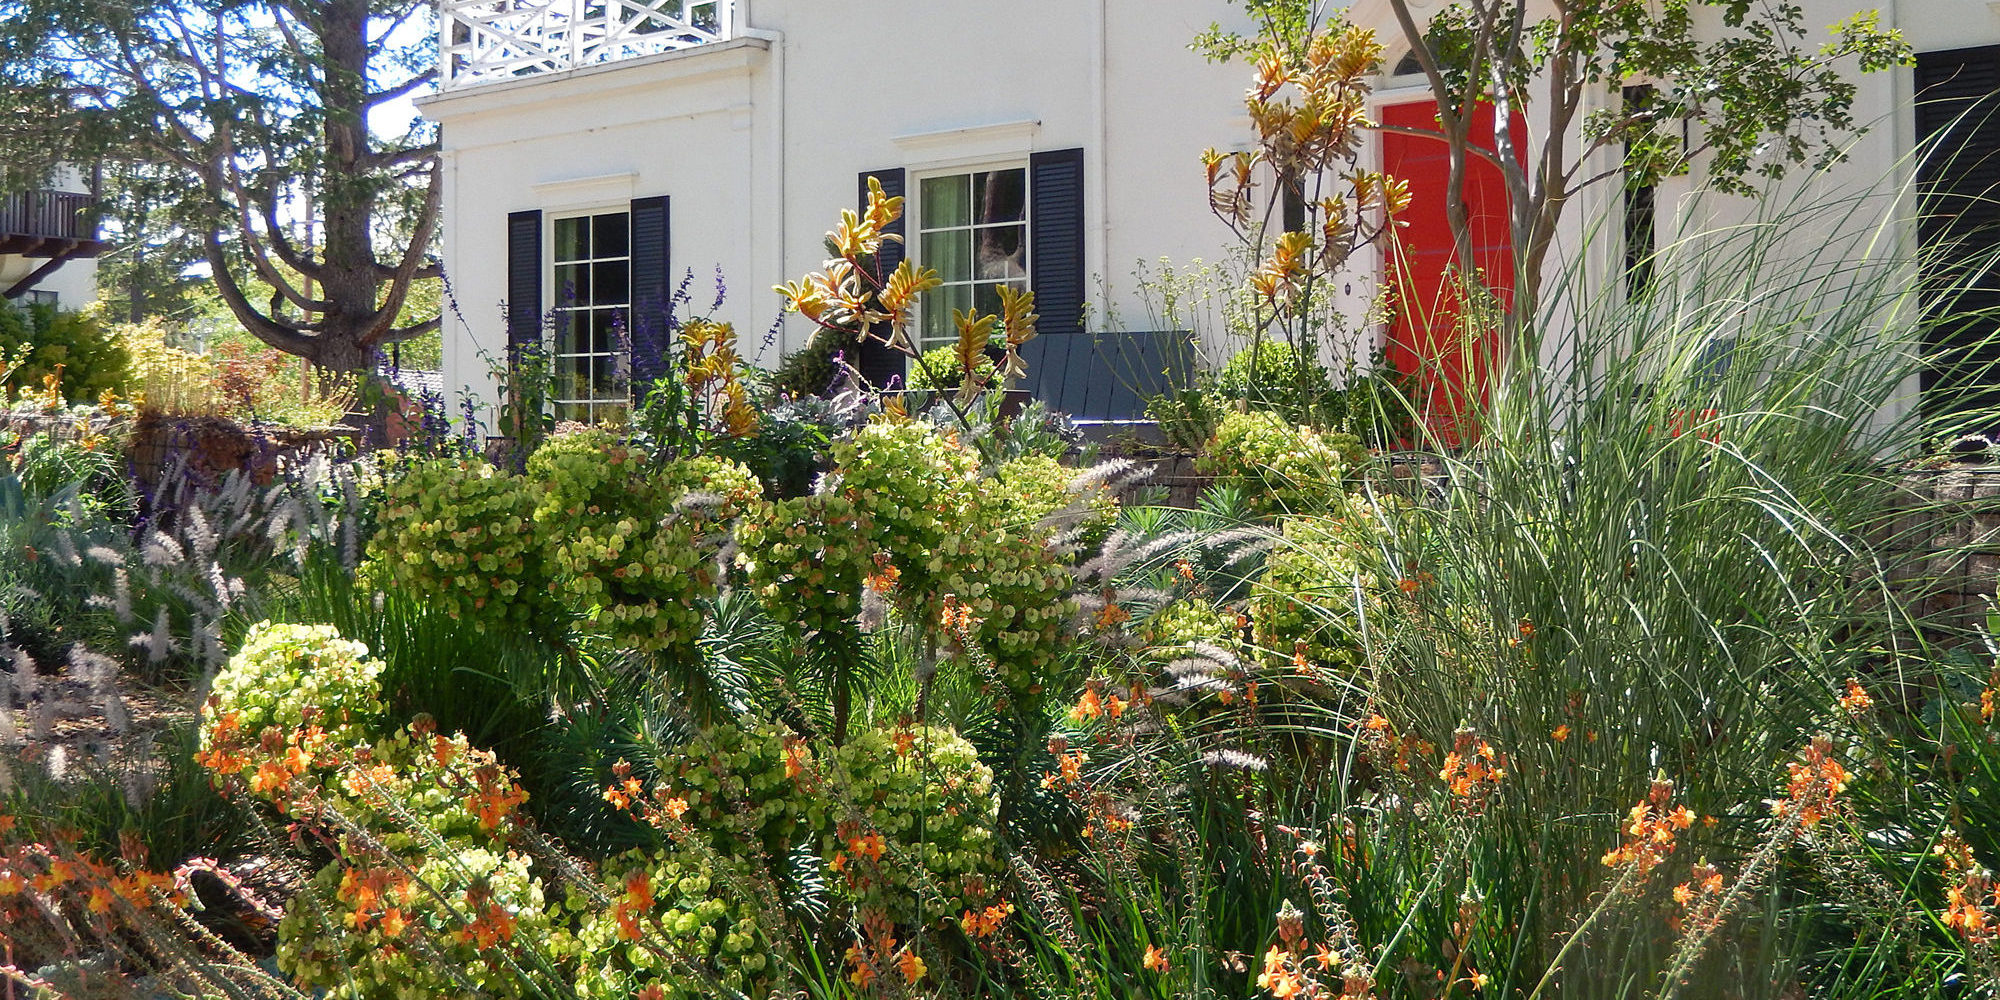 Bulbine, Euphorbia and Kangaroo Paws